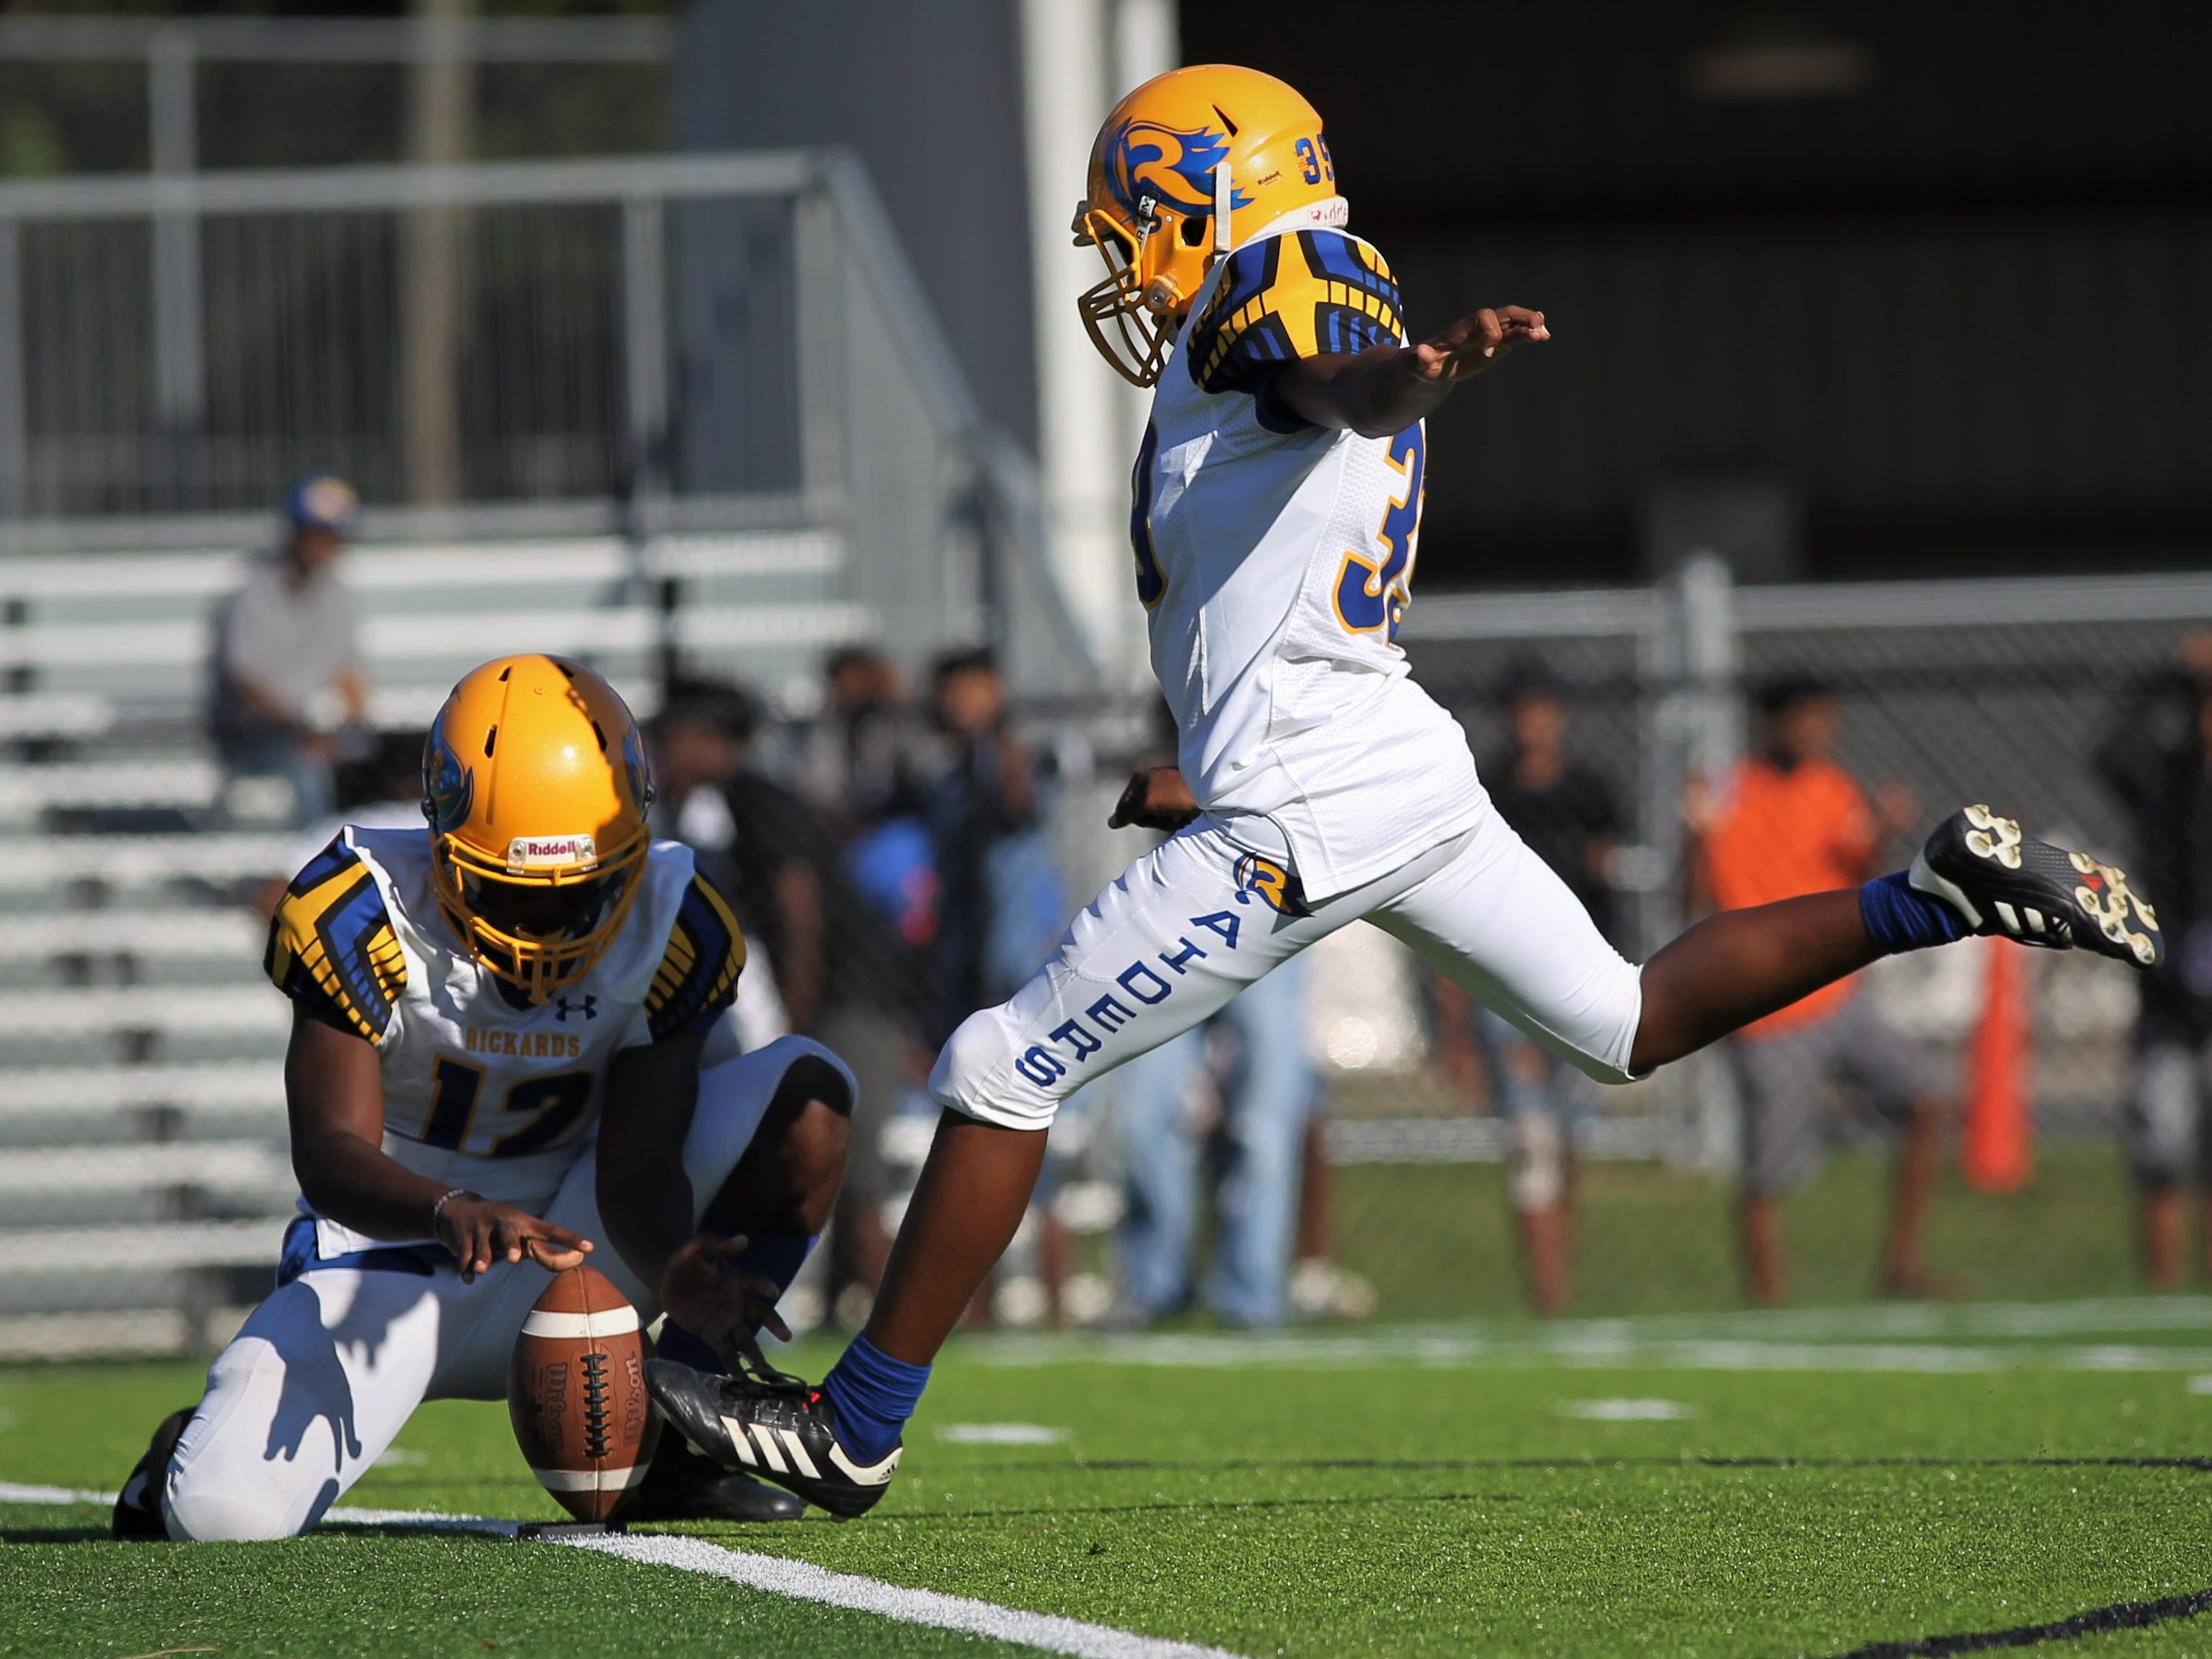 Rickards kicker Nasr Mubarak tries an extra point against Godby that would get blocked.